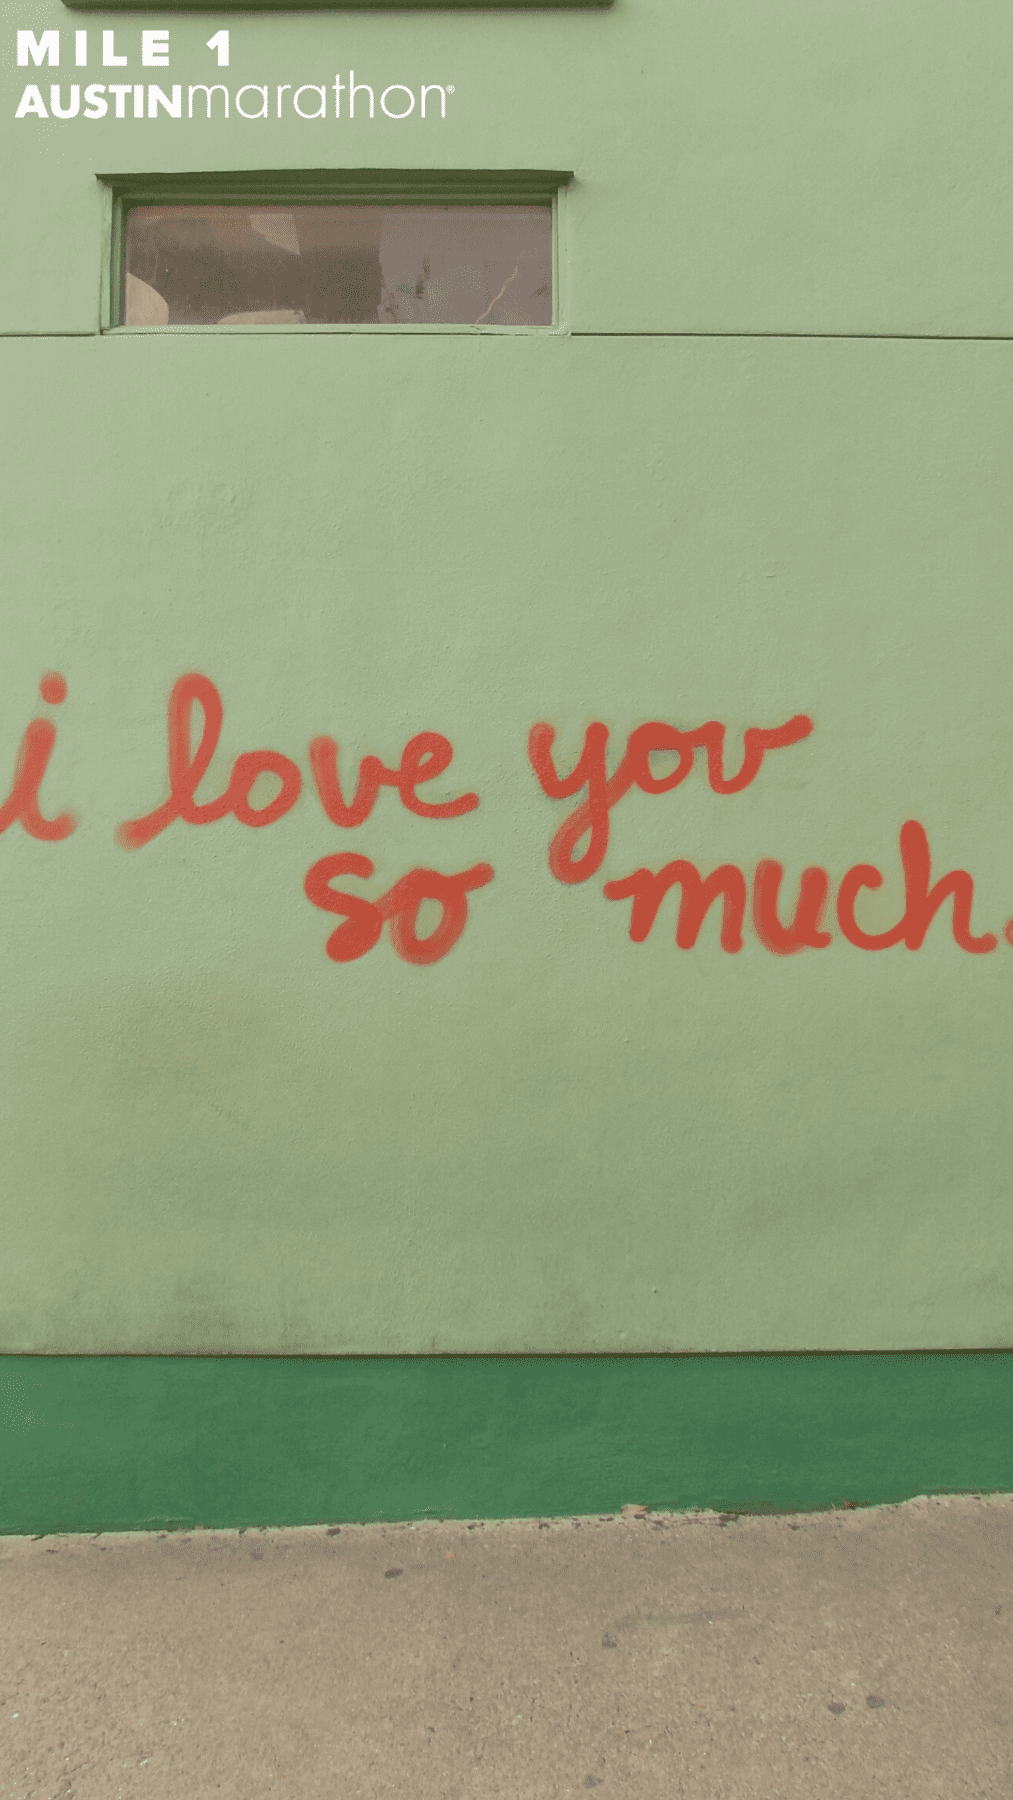 Image of i love you so much mural in Austin. It's one of the Austin Marathon's favorite on-course murals and sized for Instagram Stories so users can upload the image and take a selfie with the mural using Instagram's green screen effect.